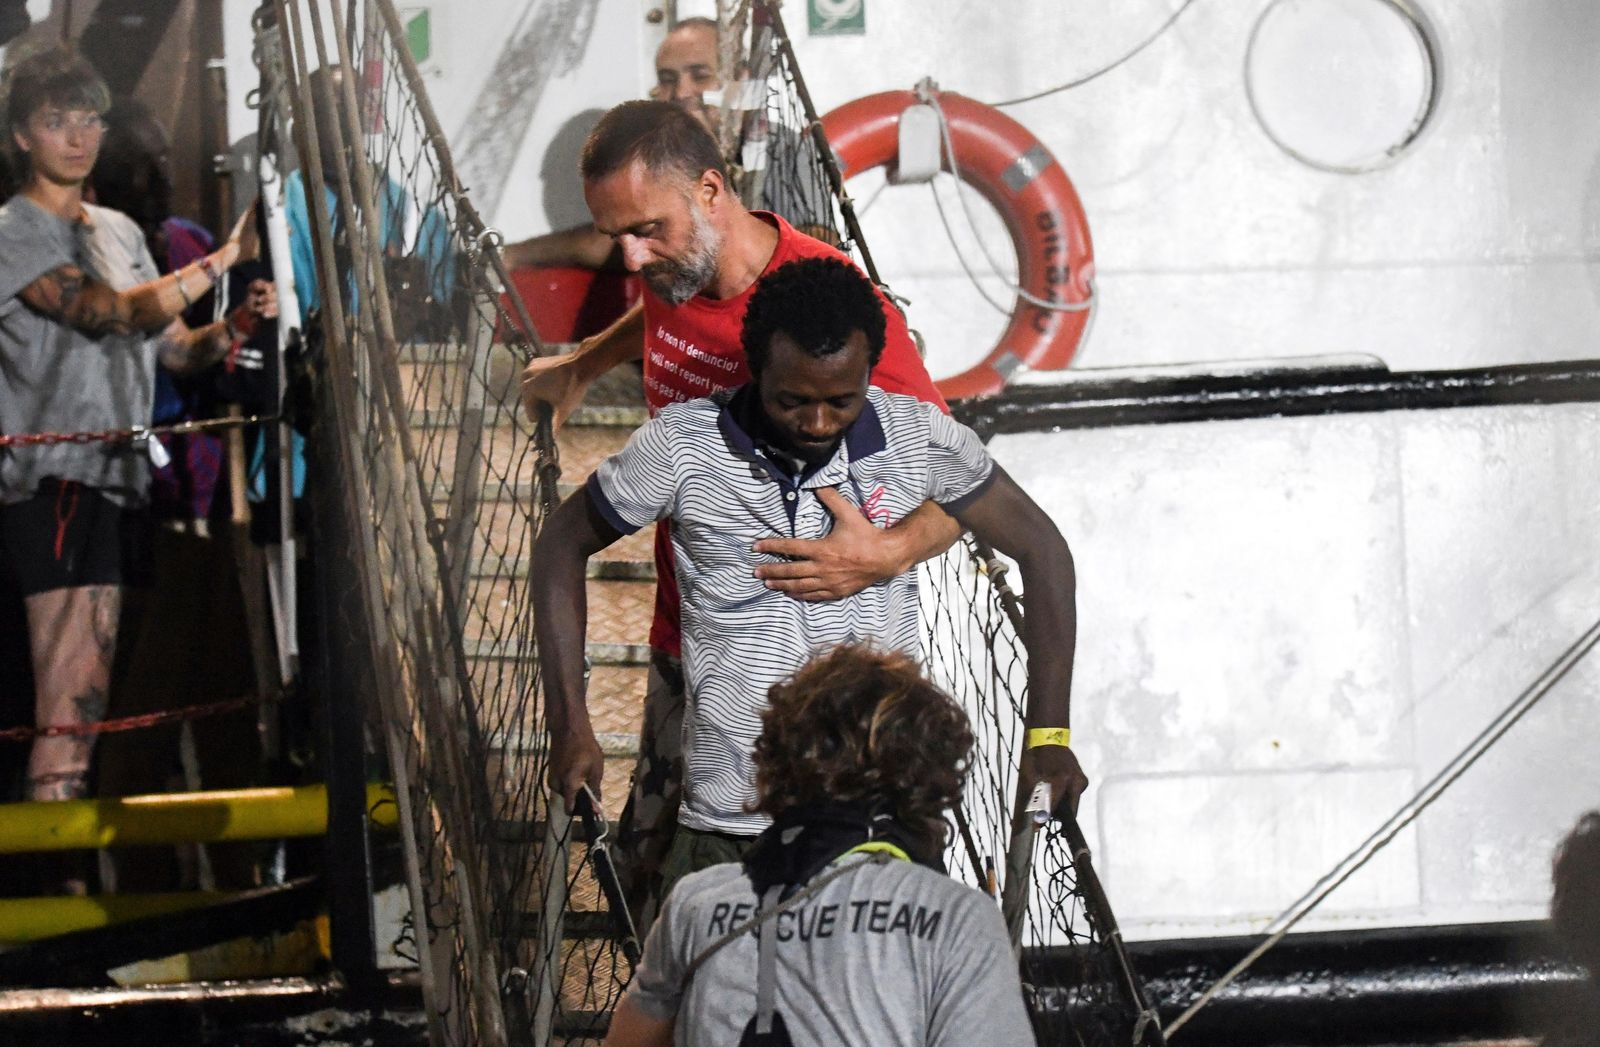 In this photo taken on Tuesday, Aug. 20, 2019, a man is helped disembark from the Open Arms rescue ship on the Sicilian island of Lampedusa, southern Italy. (AP Photo/Salvatore Cavalli)